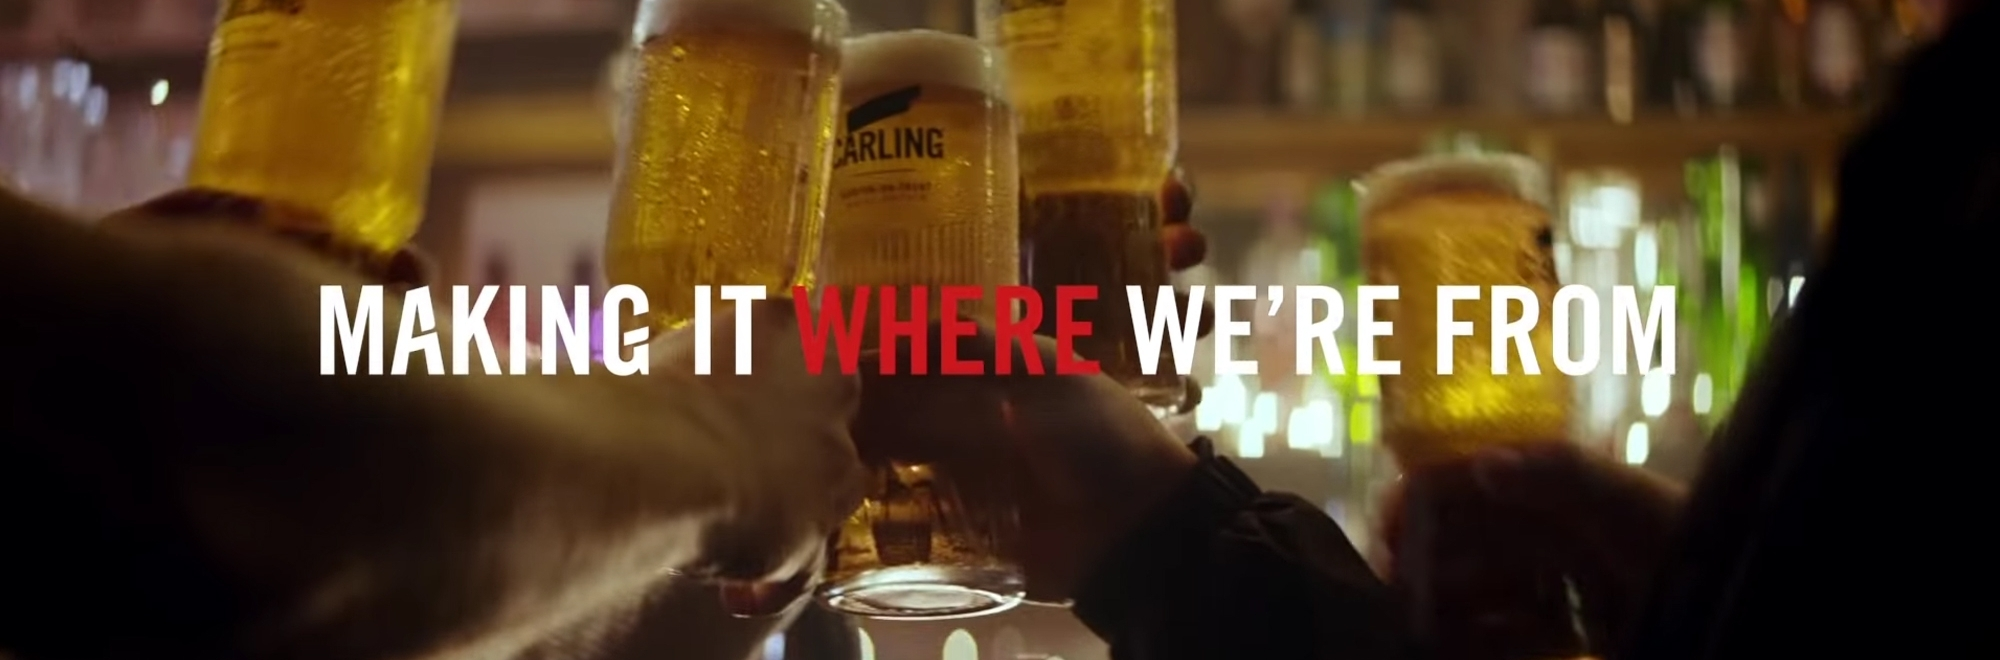 Carling returns to its hometown to tell the story behind its lager